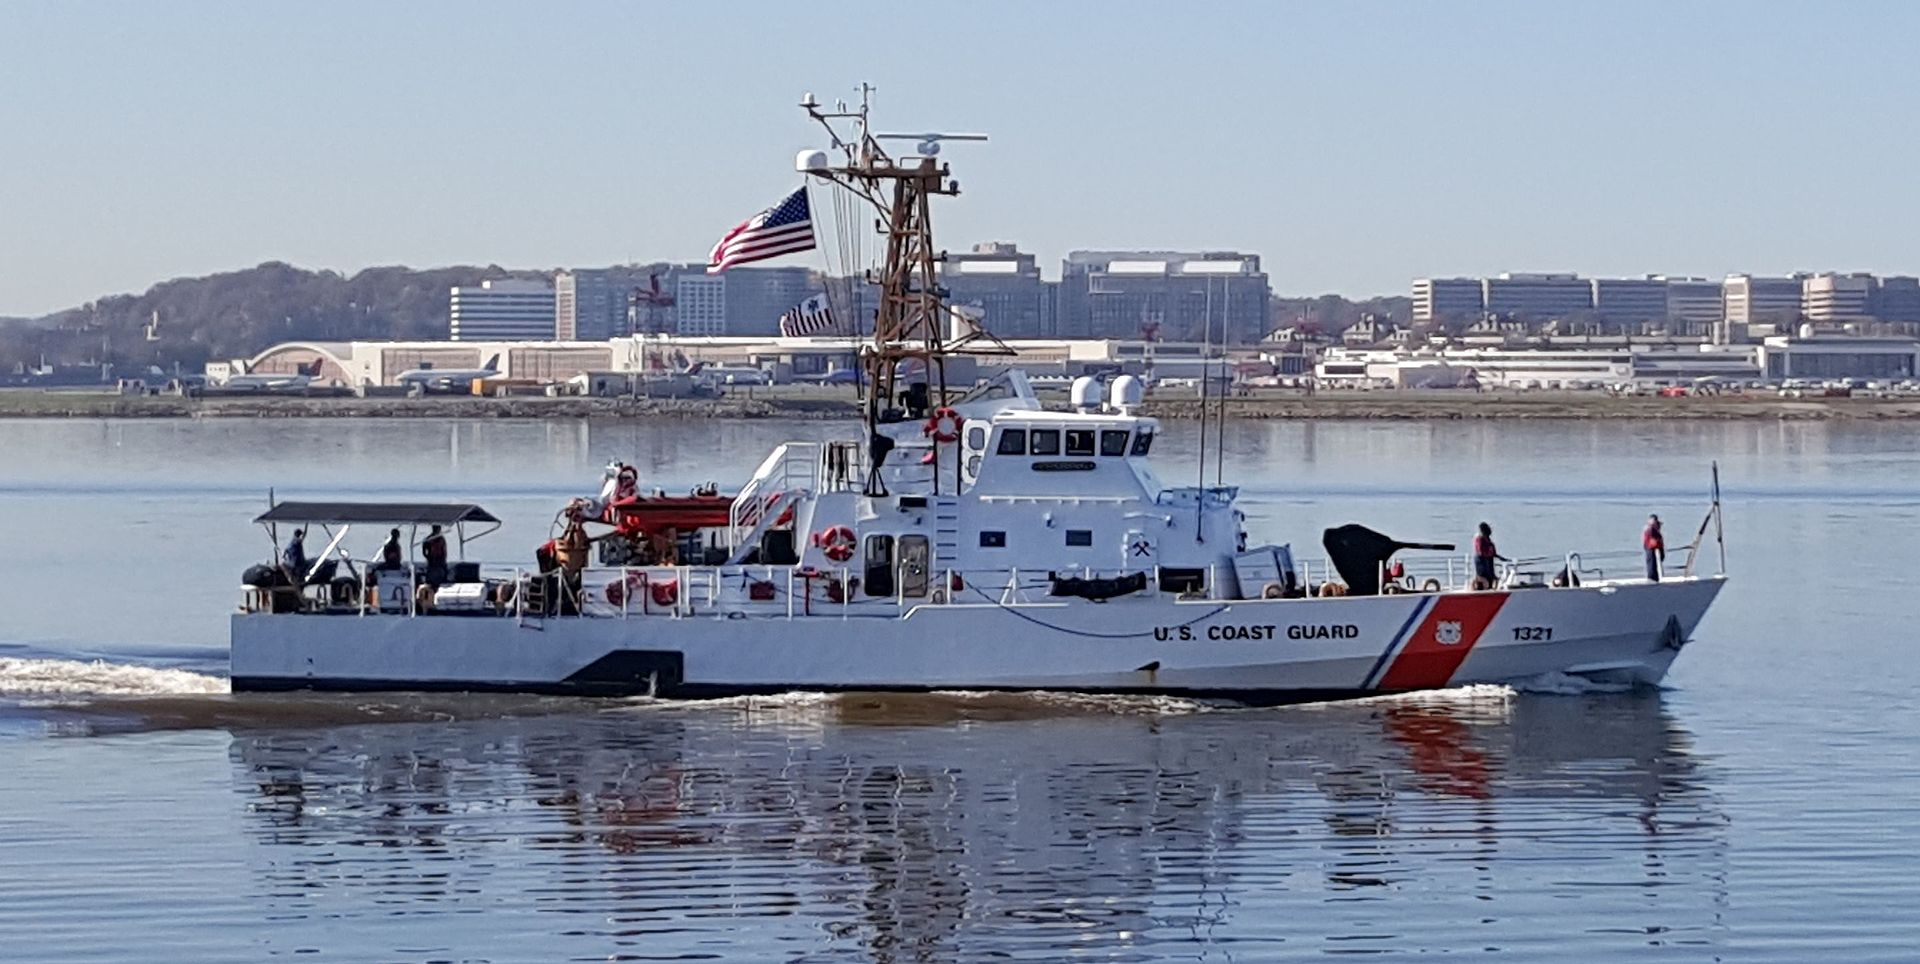 https://upload.wikimedia.org/wikipedia/commons/thumb/8/87/USCGC_Cushing_%28WPB-1321%29_on_Potomac_River_03_Nov_2015.jpg/1920px-USCGC_Cushing_%28WPB-1321%29_on_Potomac_River_03_Nov_2015.jpg